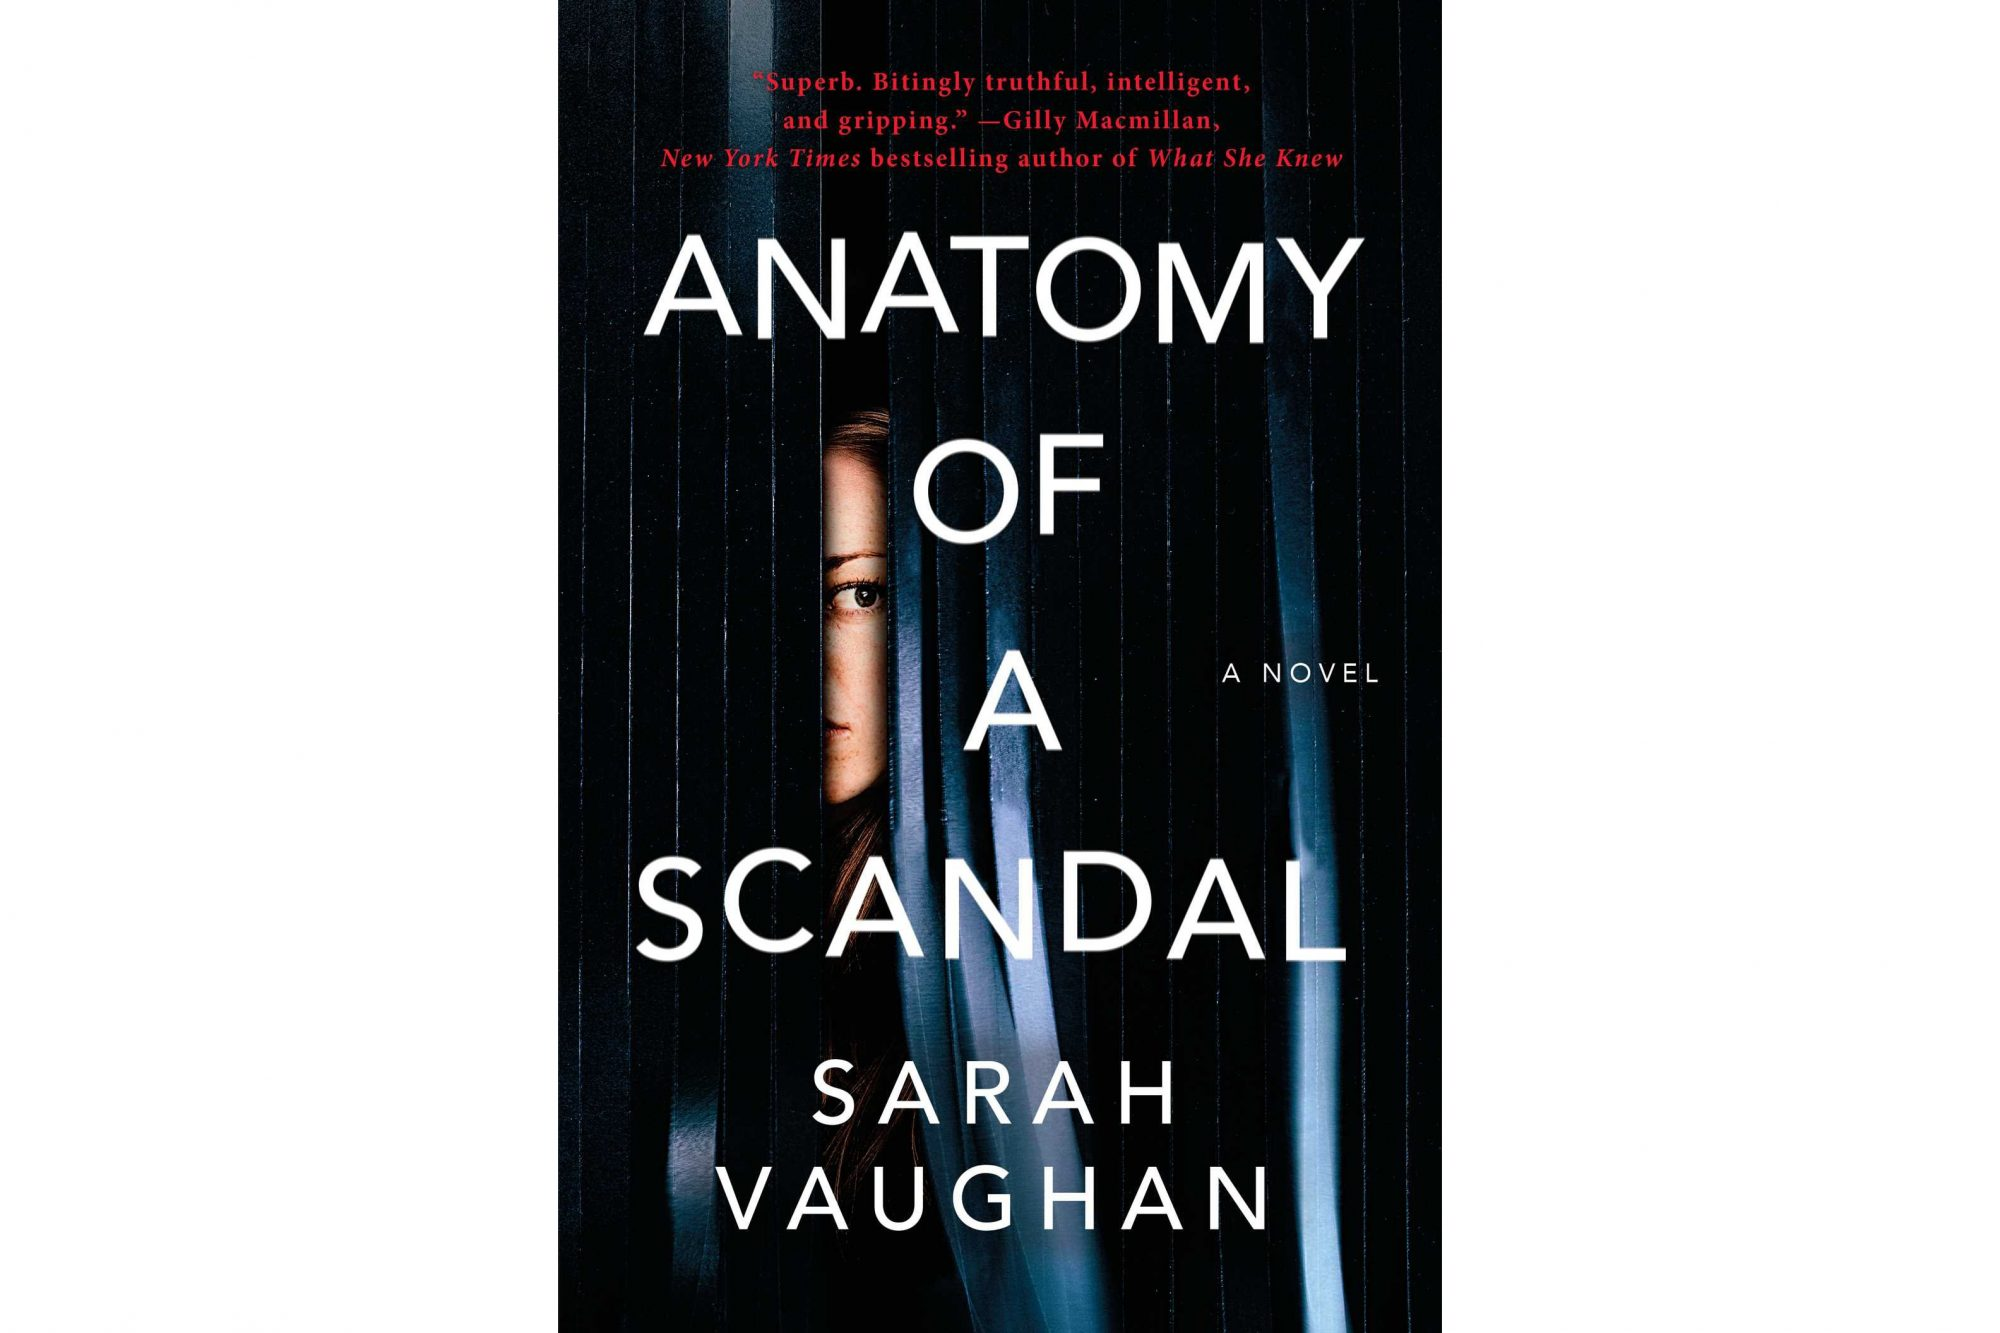 Clone of Anatomy of a Scandal, by Sarah Vaughan (Books to read sooner)